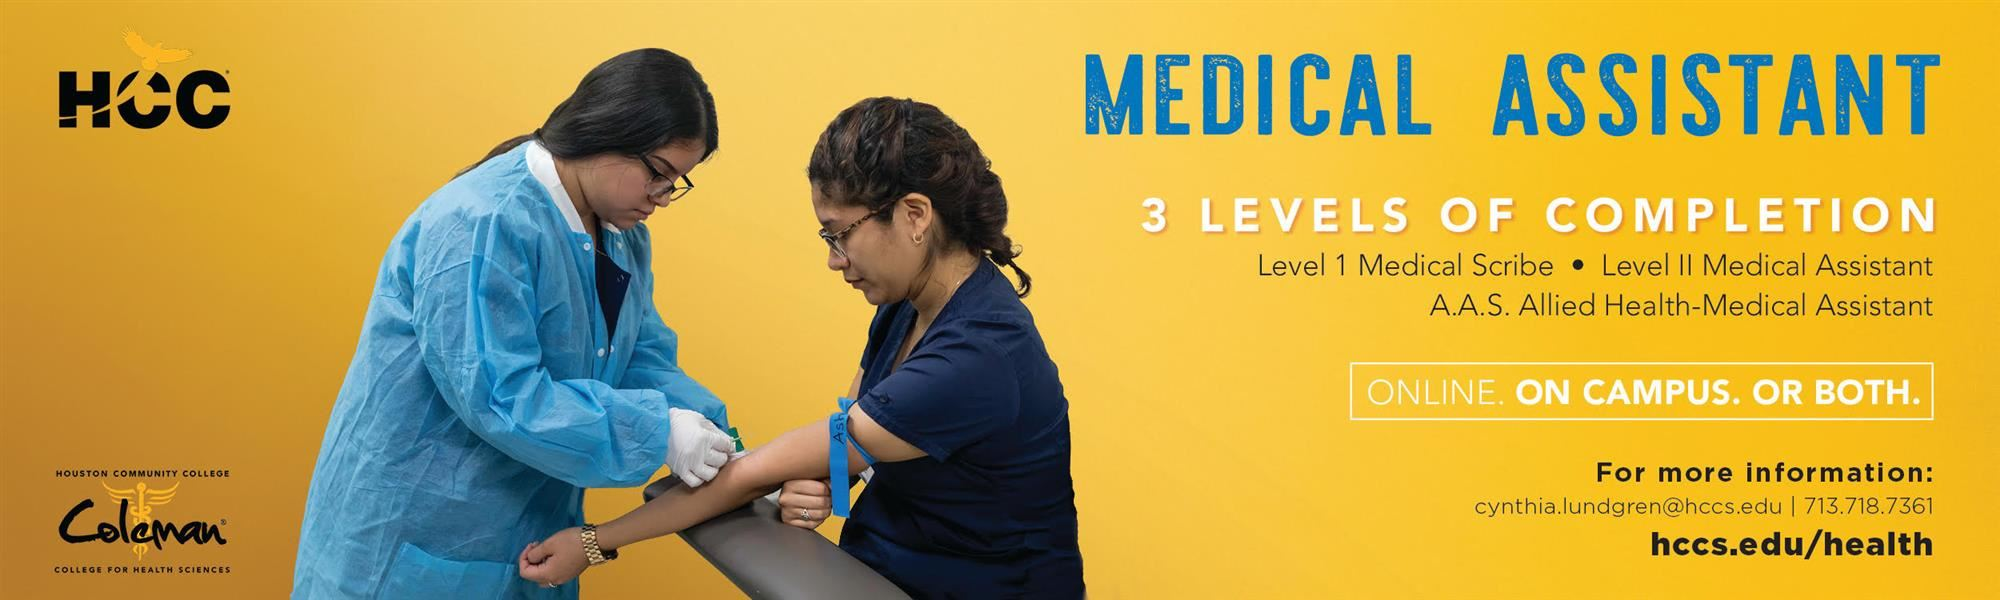 Houston Community College - Health Program - Medical Assistant